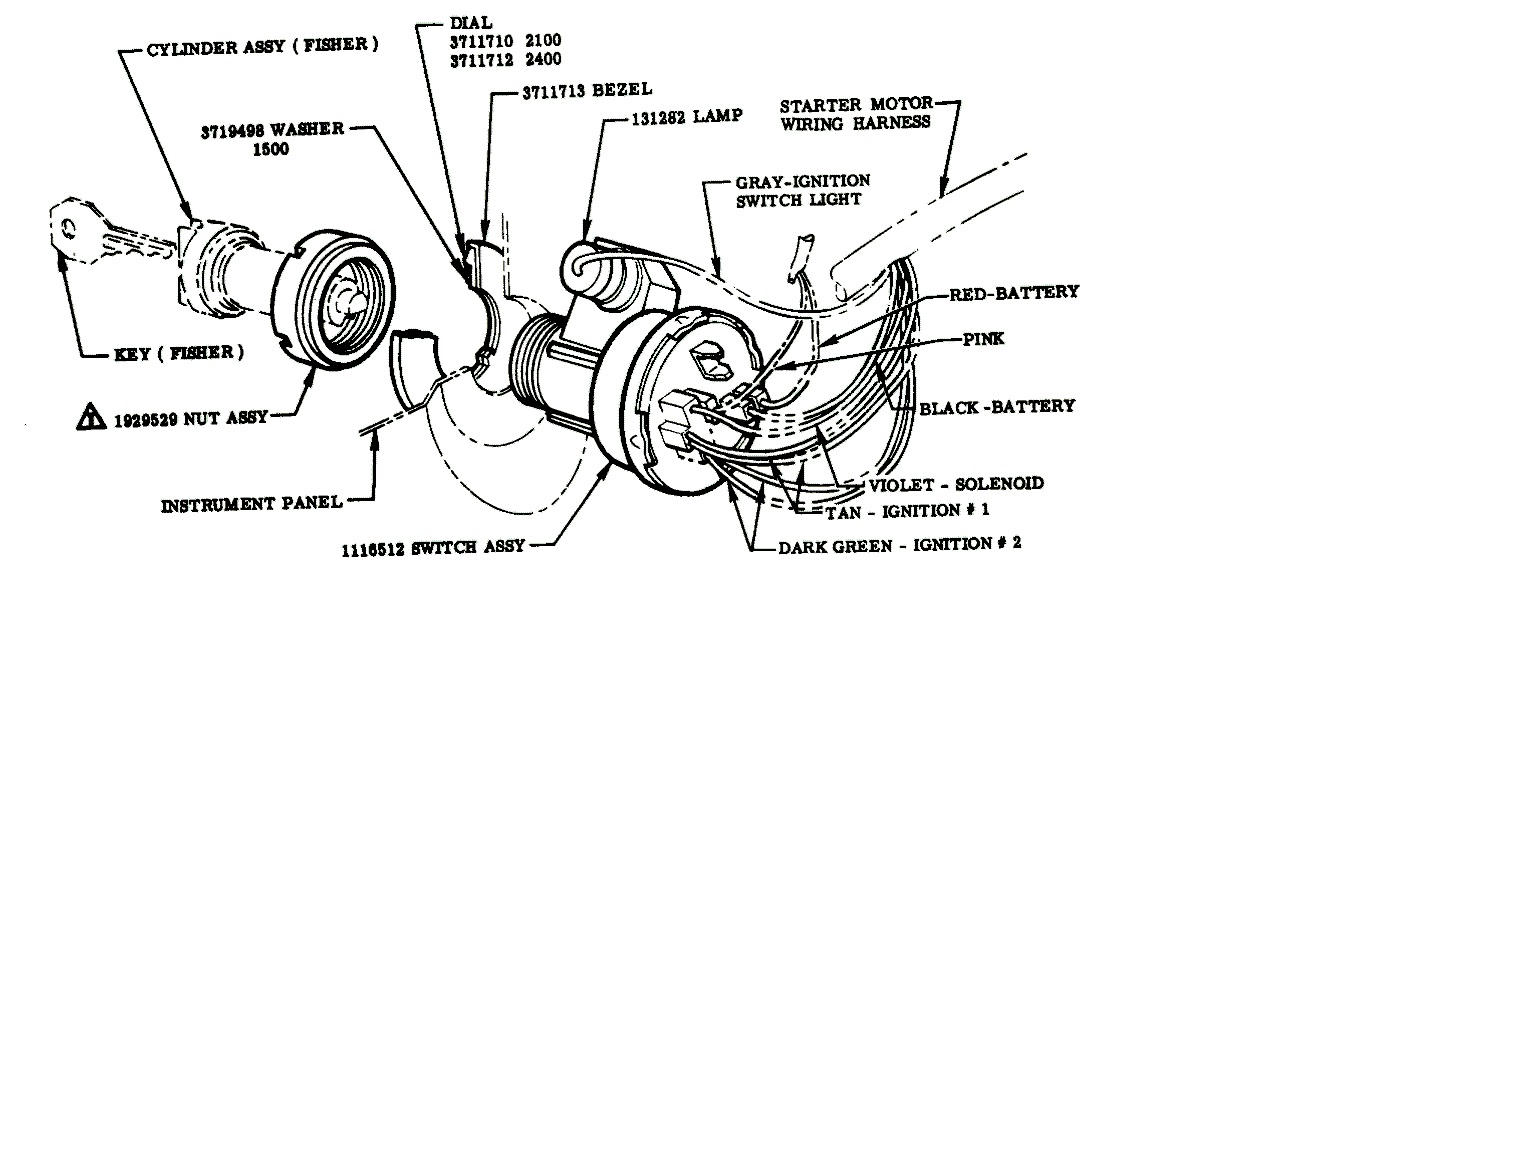 ford hei distributor wiring diagram ford ignition coil diagram hei distributor wiring diagram at alyssarenee.co